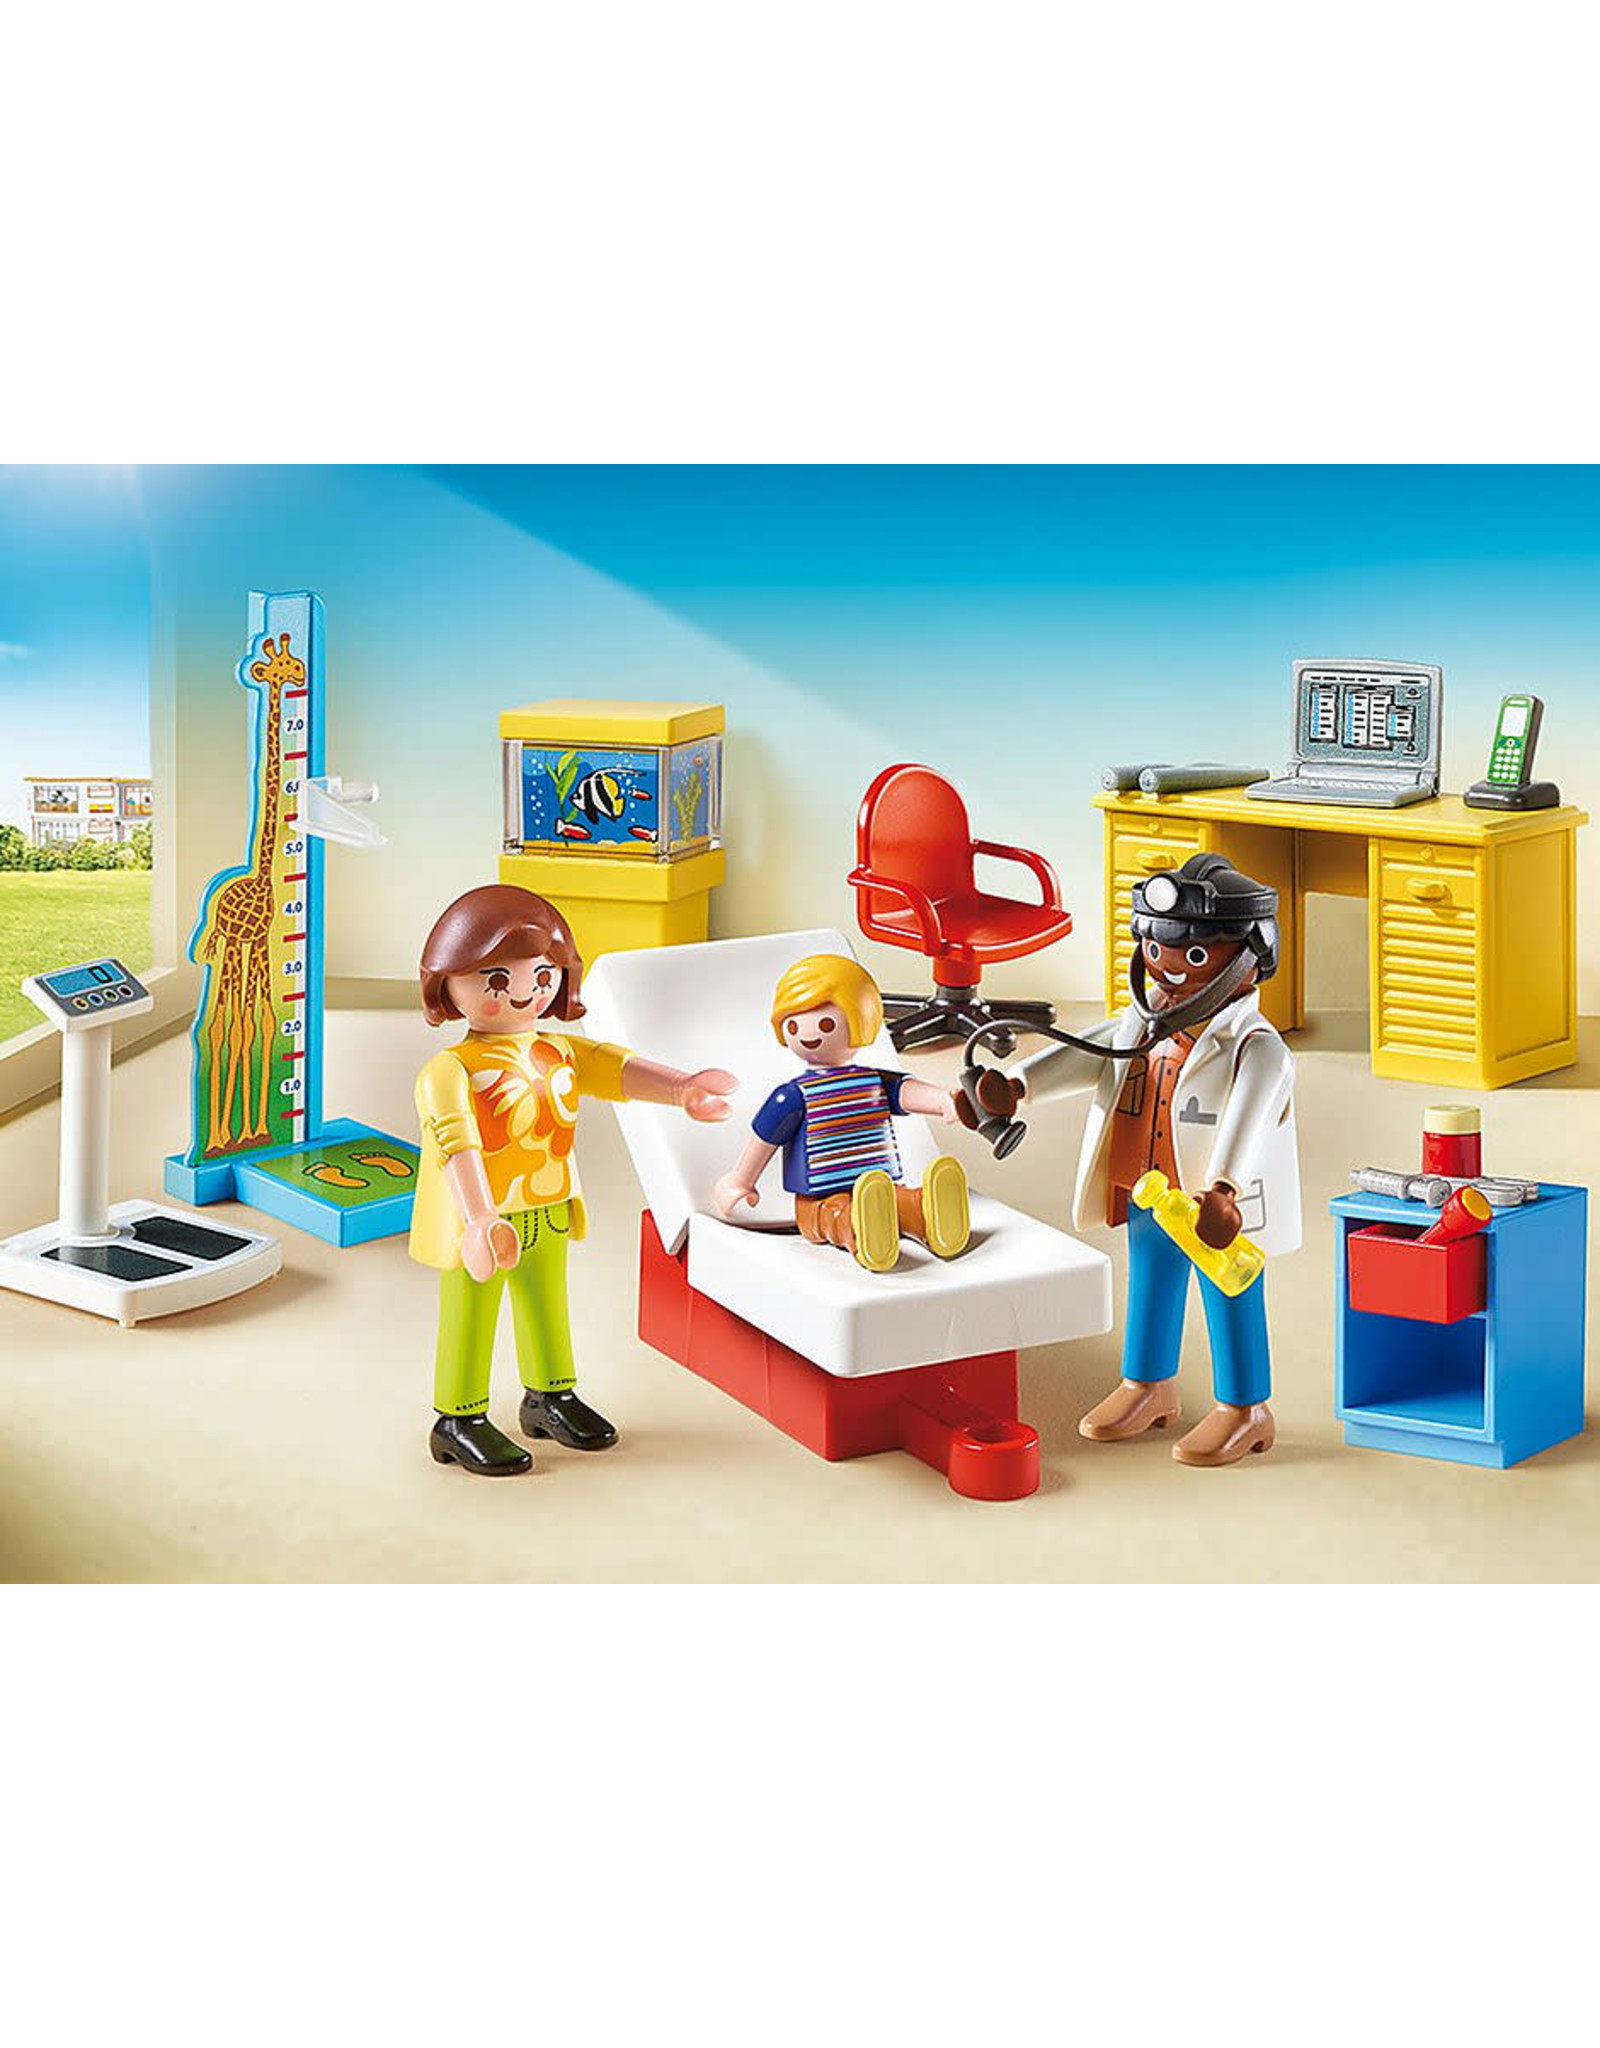 Playmobil Pediatrician's Office